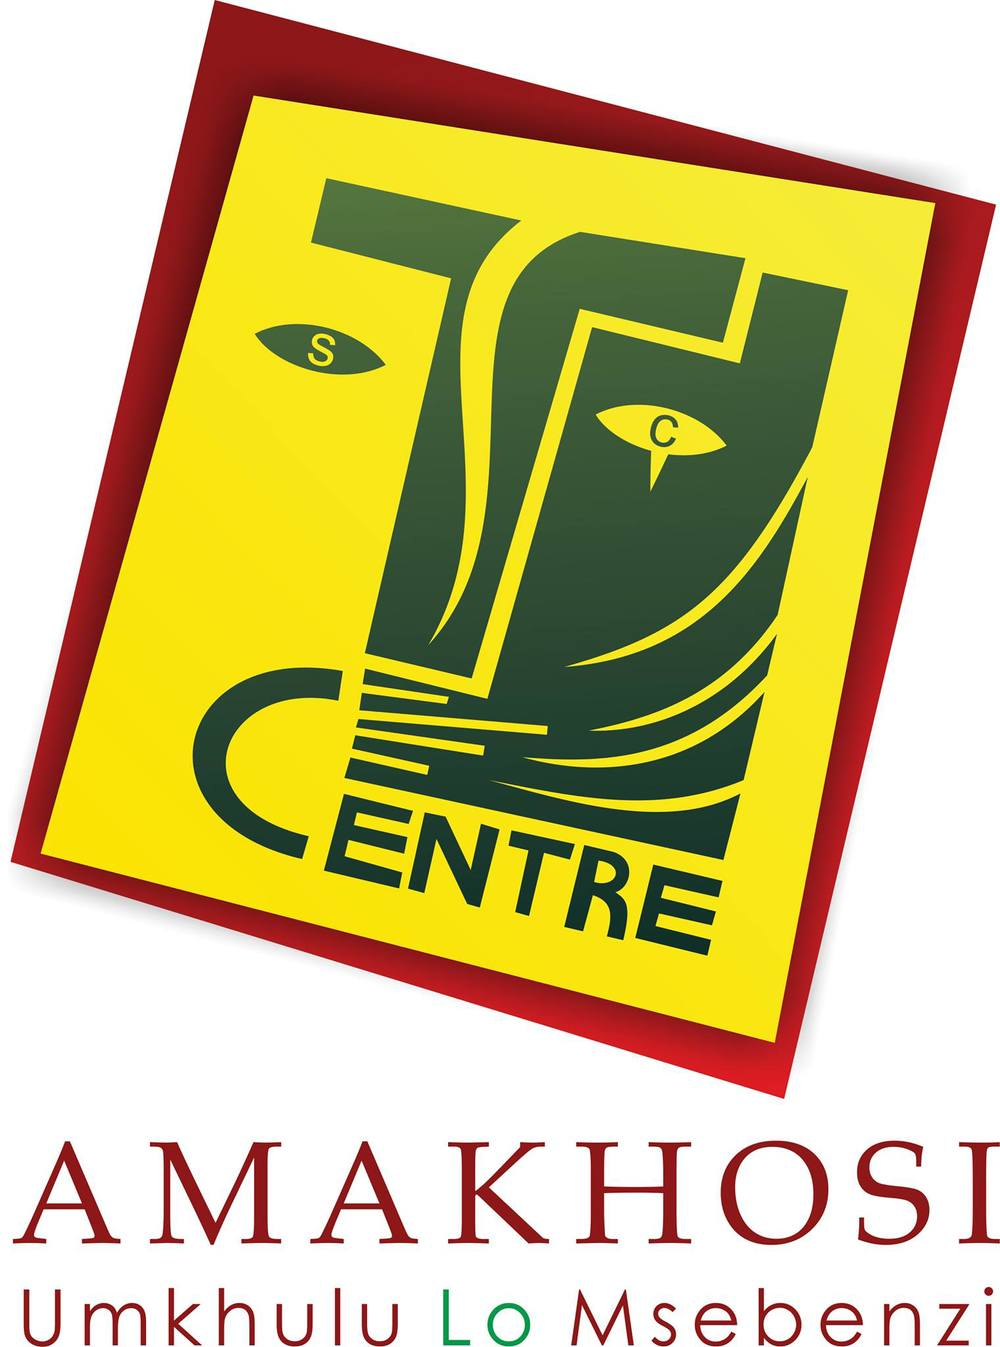 Amakhosi Cultural Centre